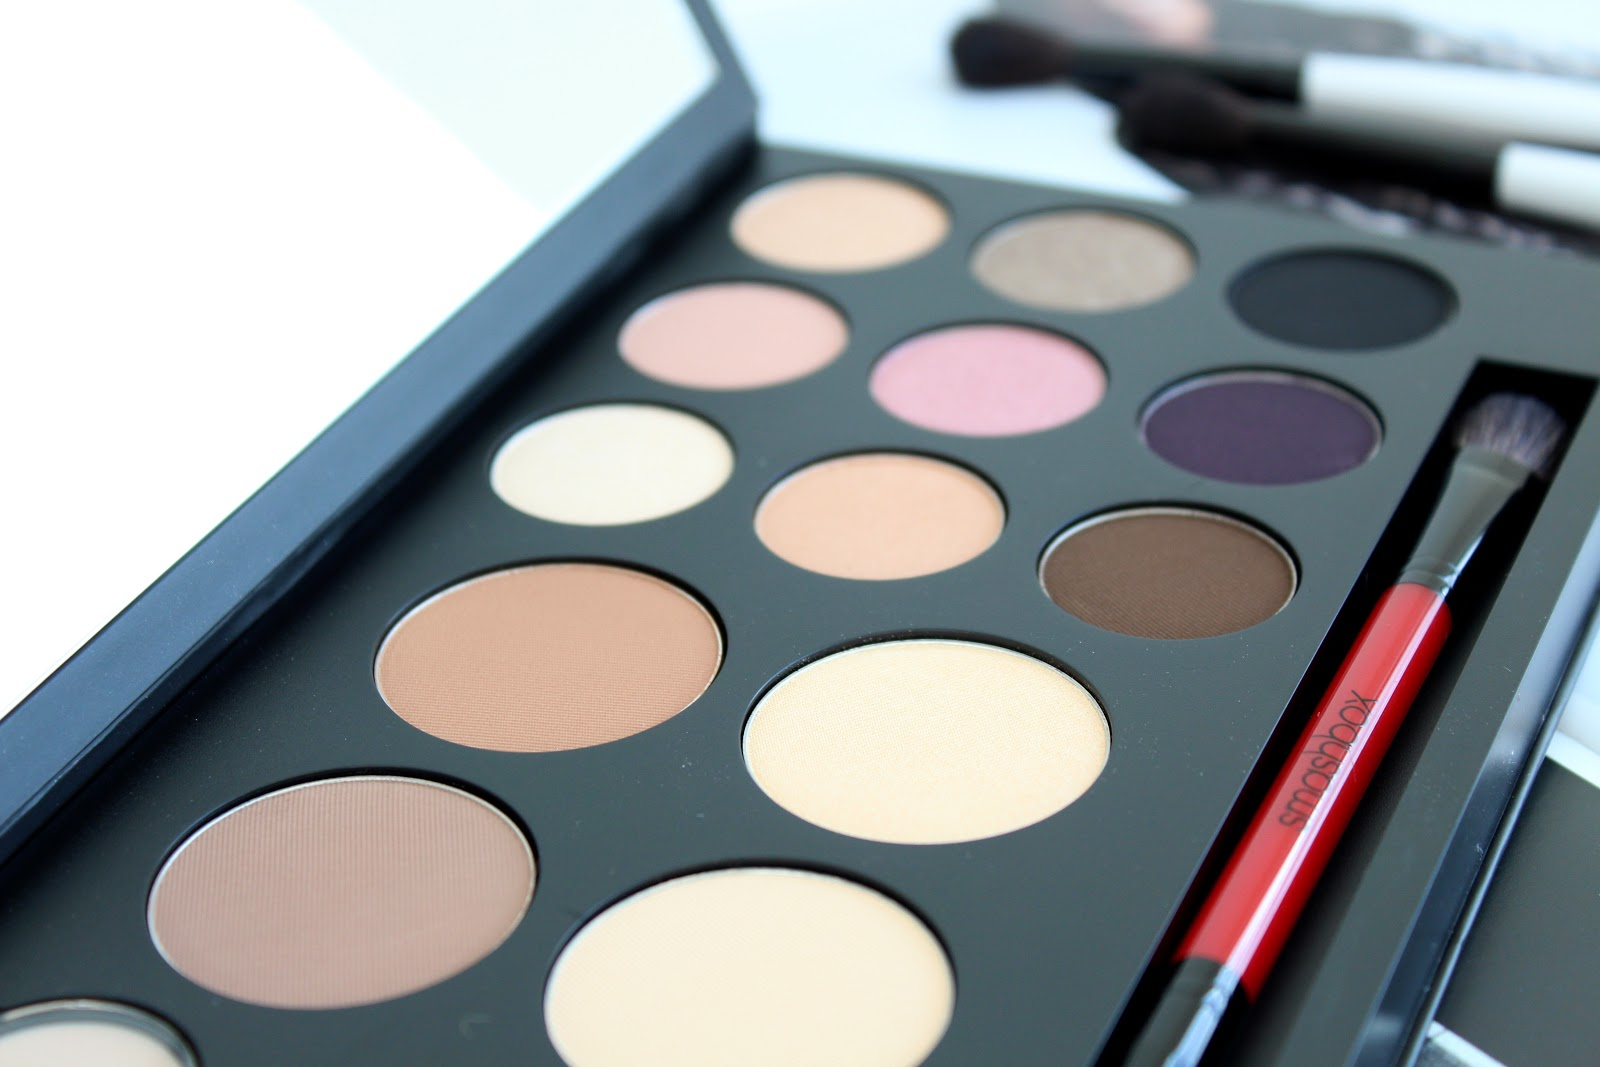 Smashbox #Shapematters Palette Review & Swatches